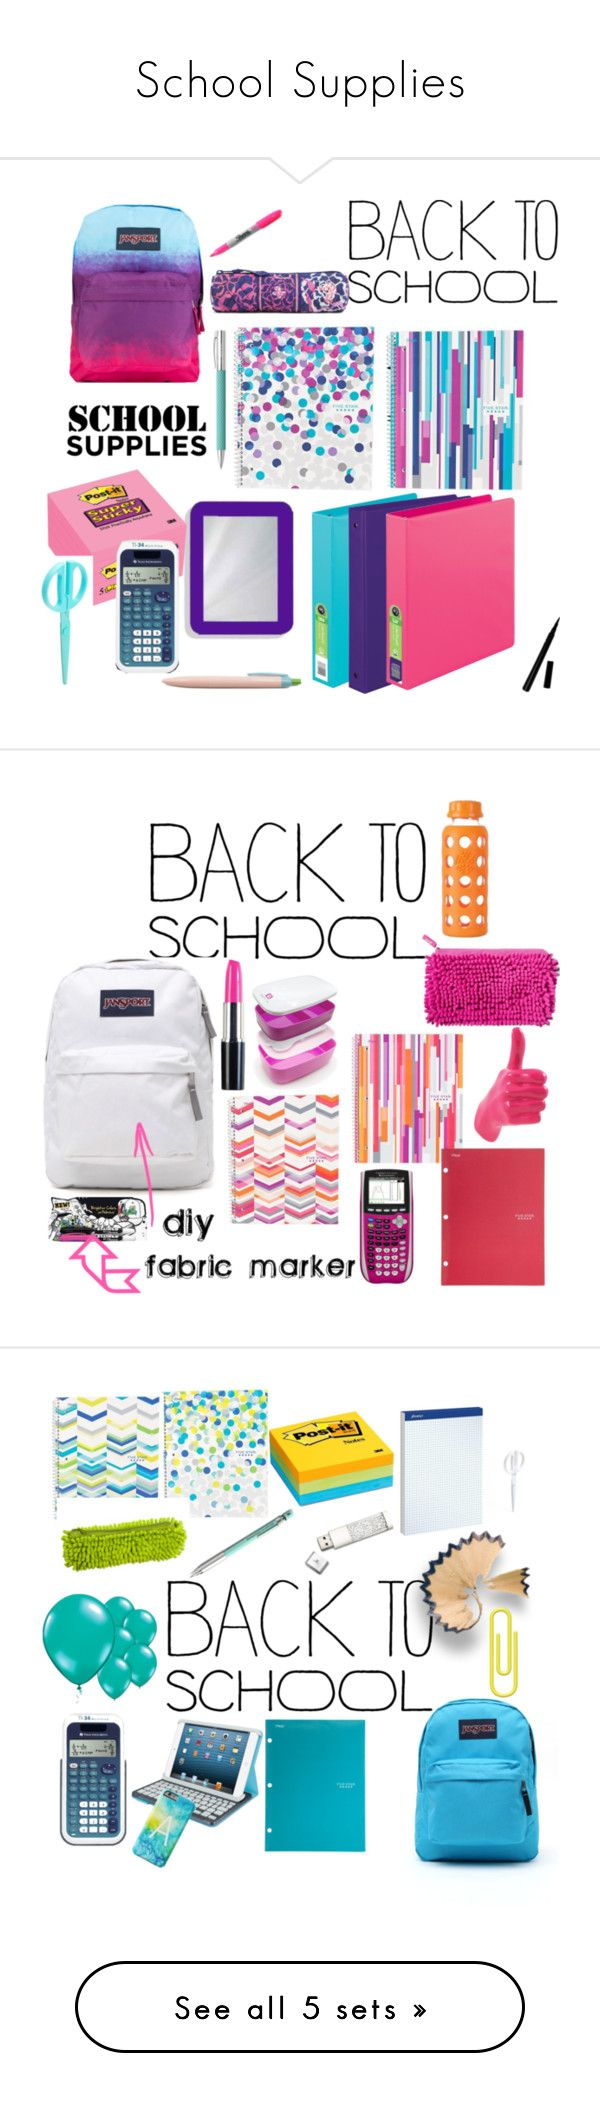 """""""School Supplies"""" by summerloveforever335 ❤ liked on Polyvore featuring interior, interiors, interior design, home, home decor, interior decorating, JanSport, Post-It, Sharpie and Vera Bradley"""